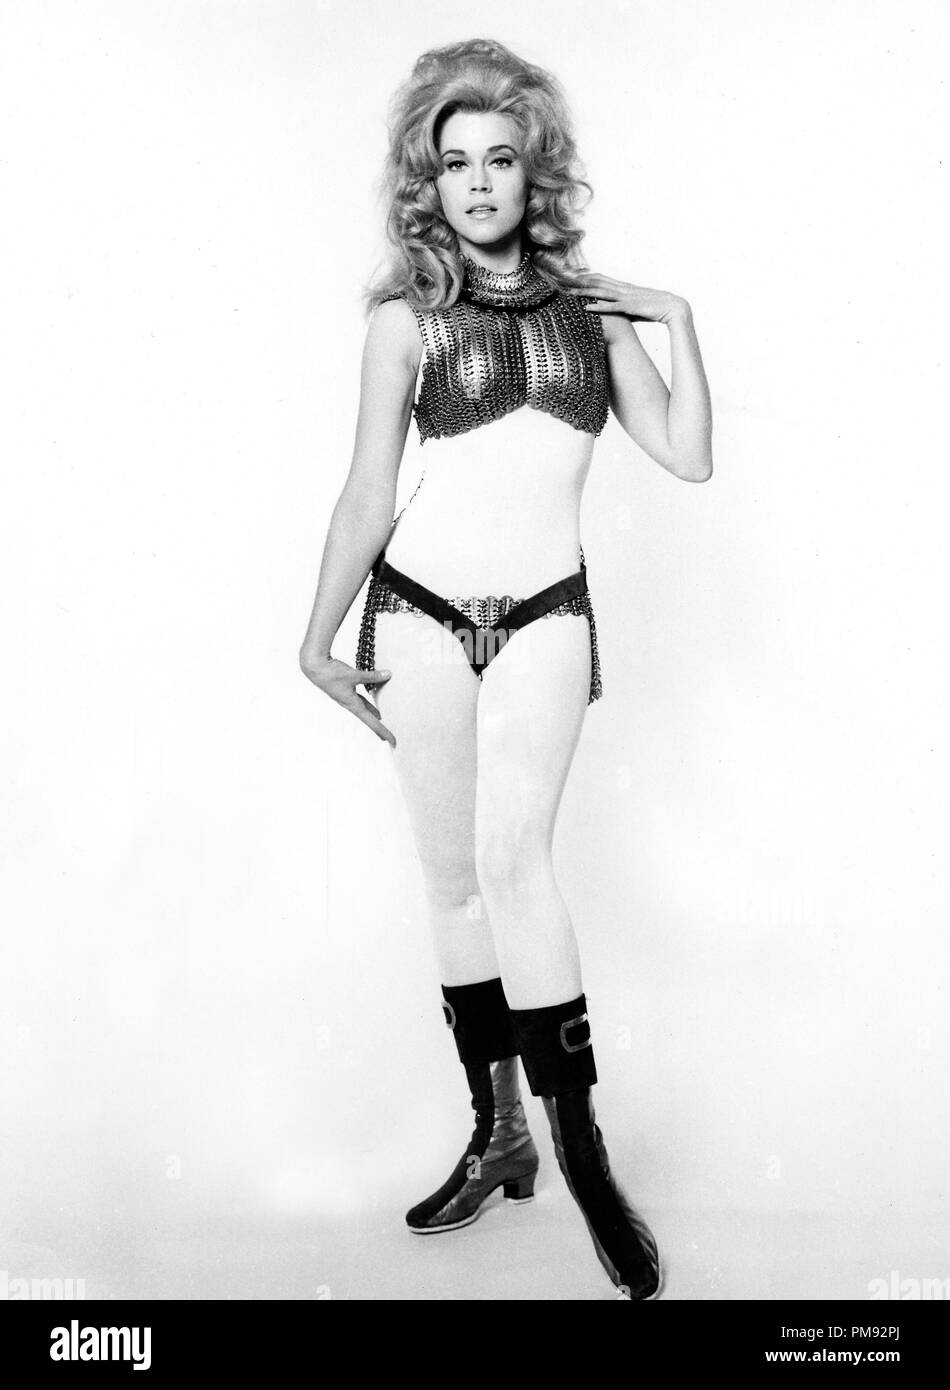 Jane fonda barbarella pictures